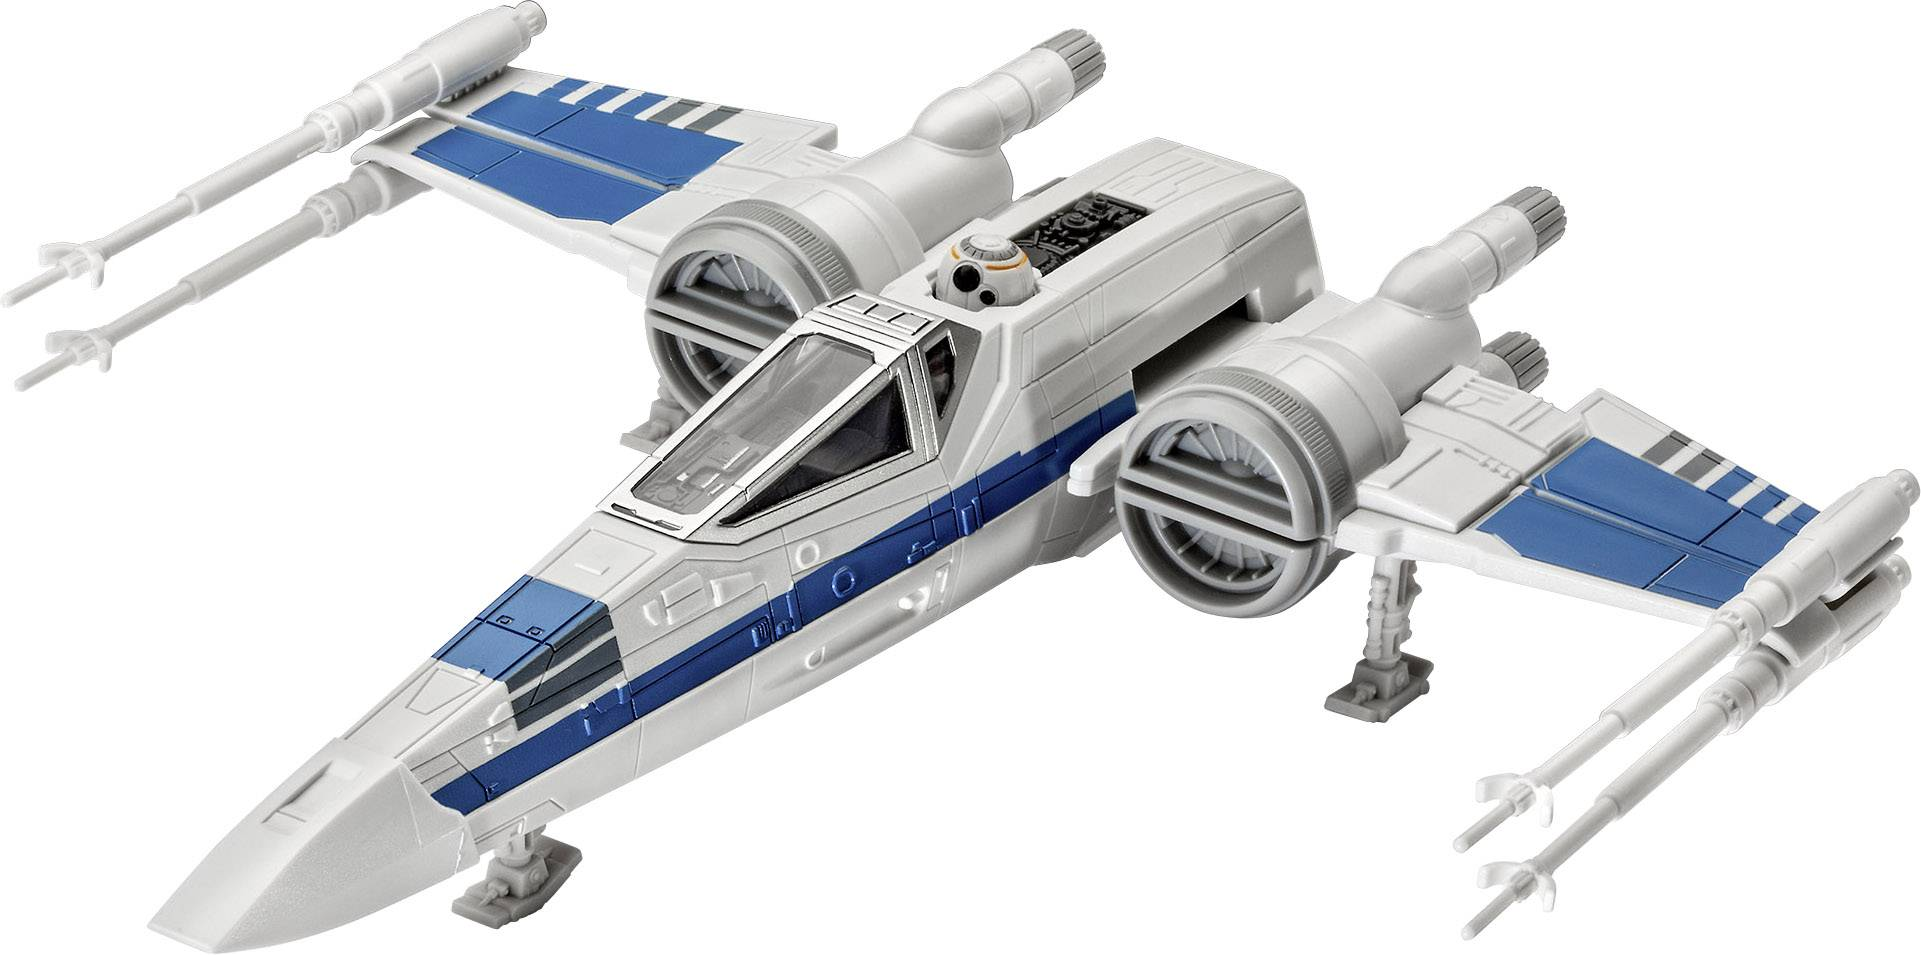 Sci-fi model, stavebnice Revell 06753 Star Wars Resistance X-Wing Fighter